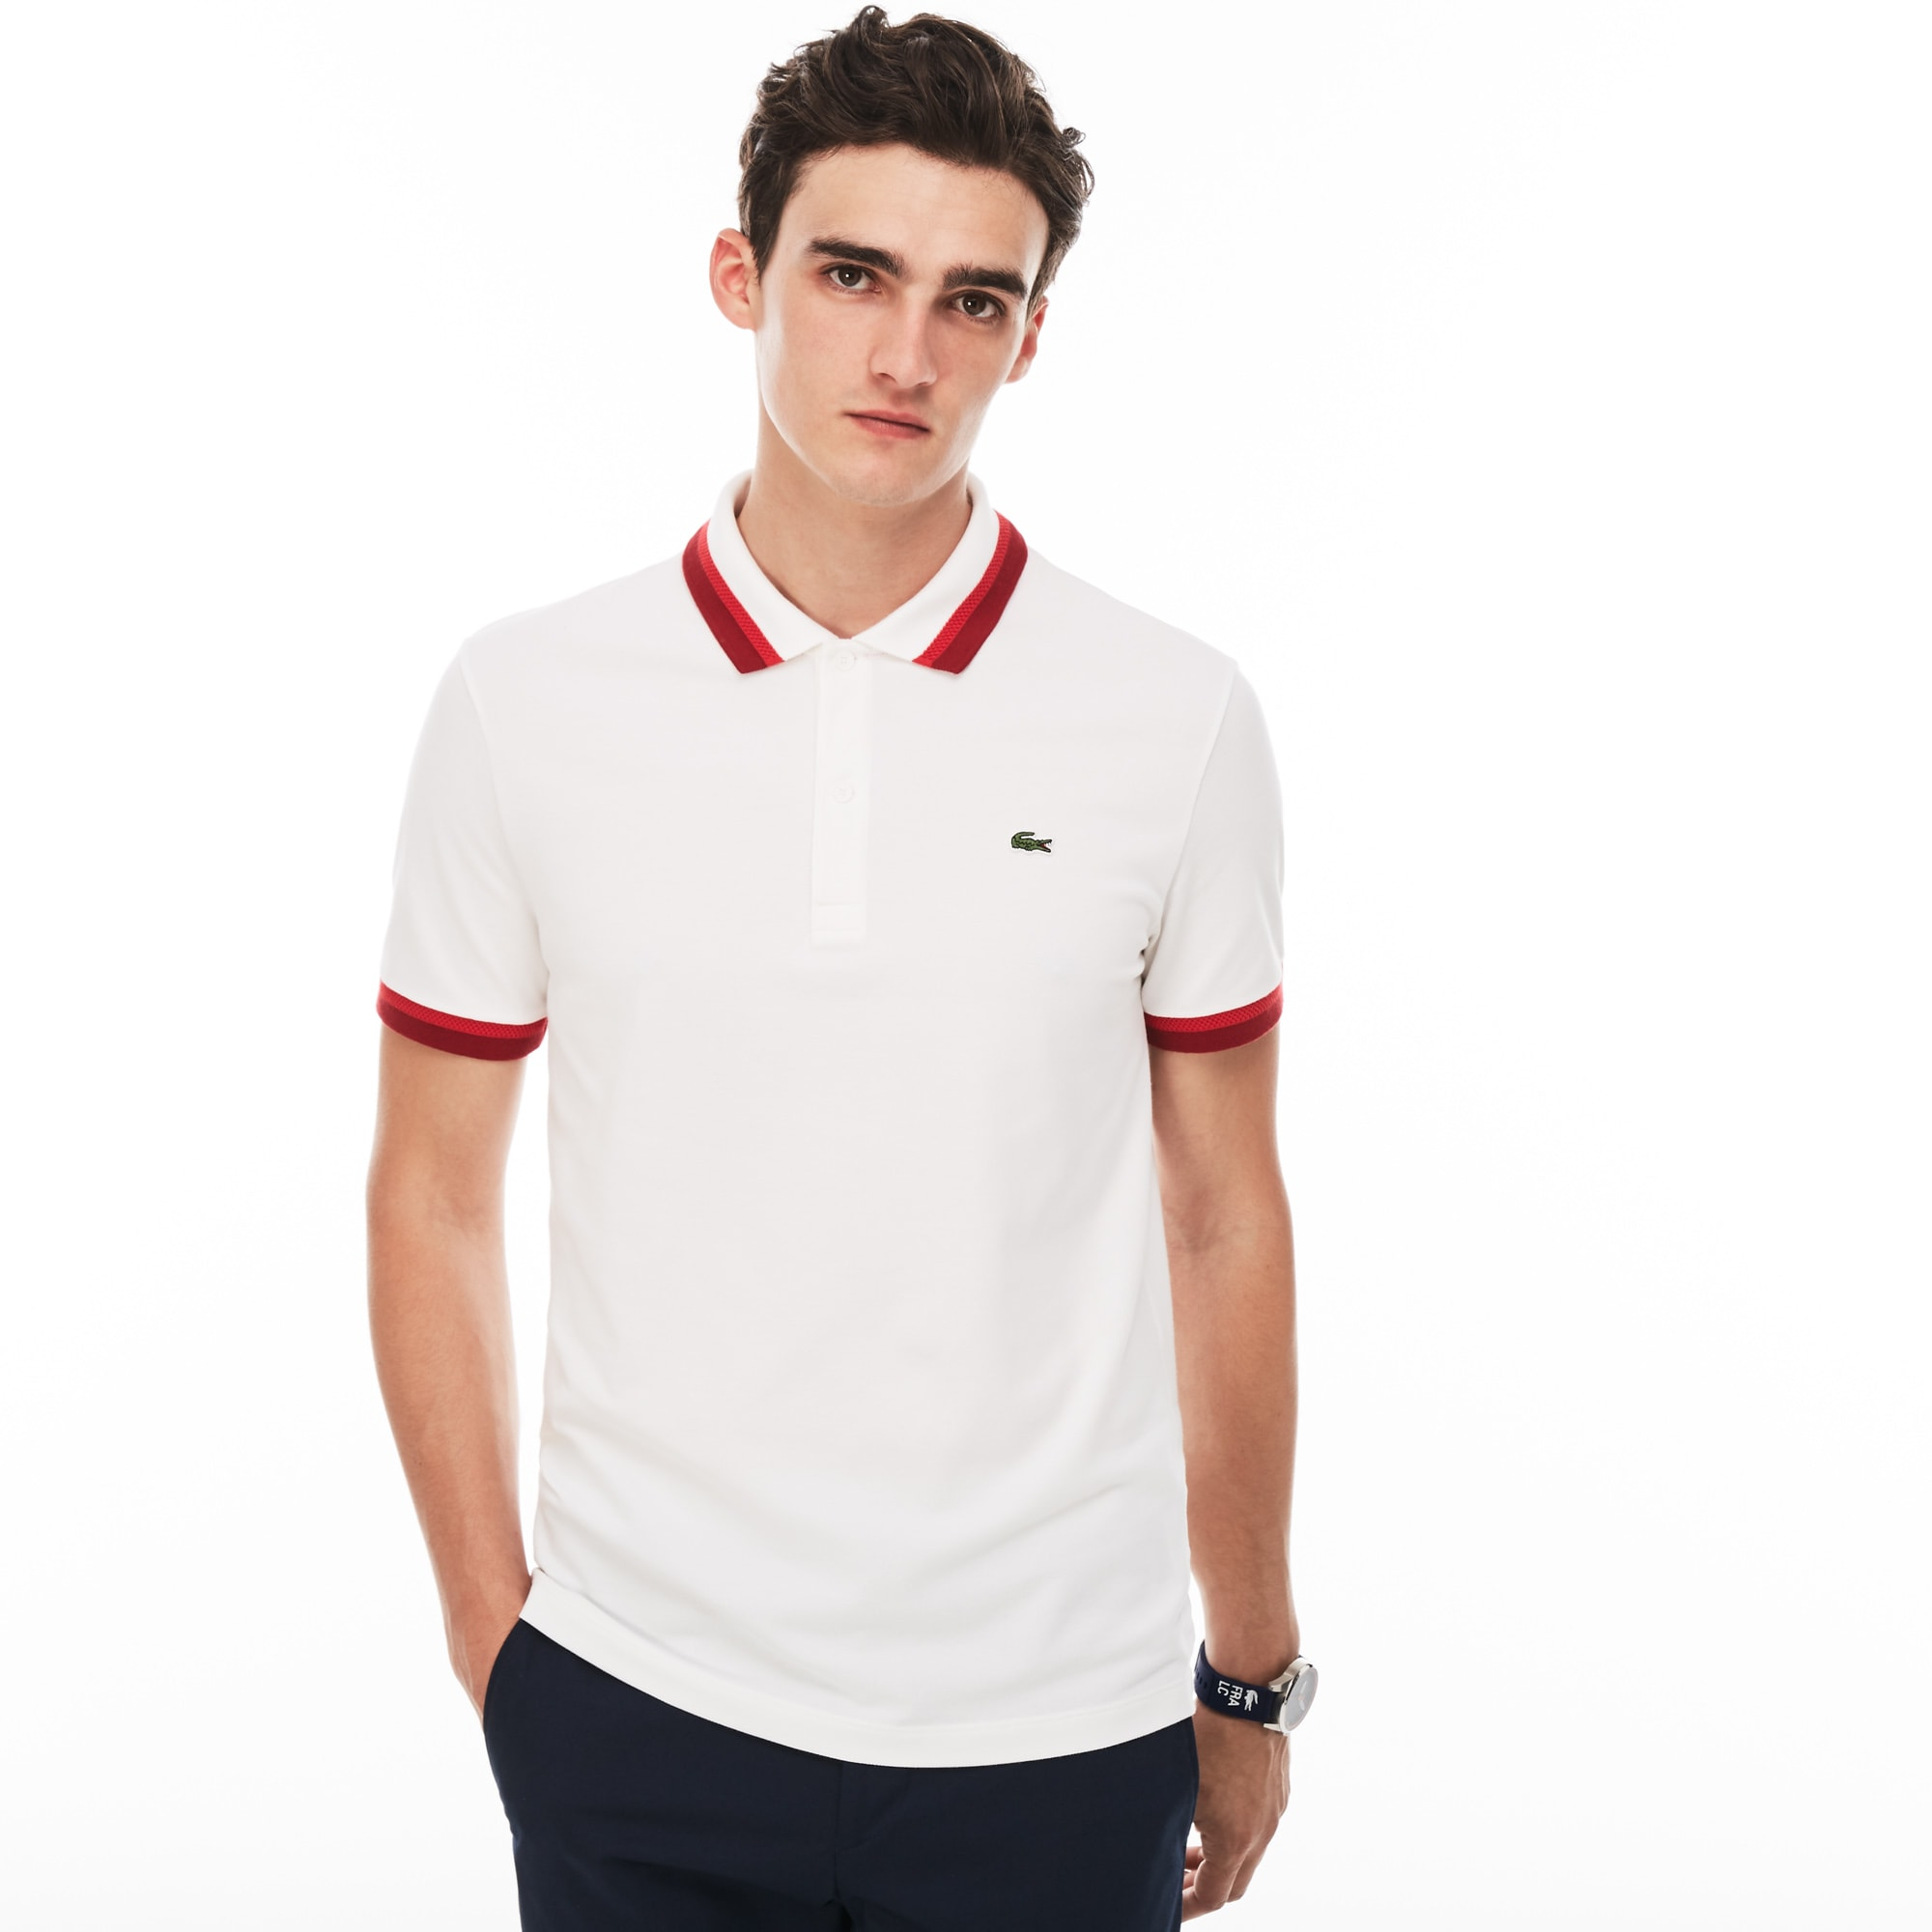 Men's Lacoste Slim Fit Contrast Accents Stretch Pima Piqué Polo